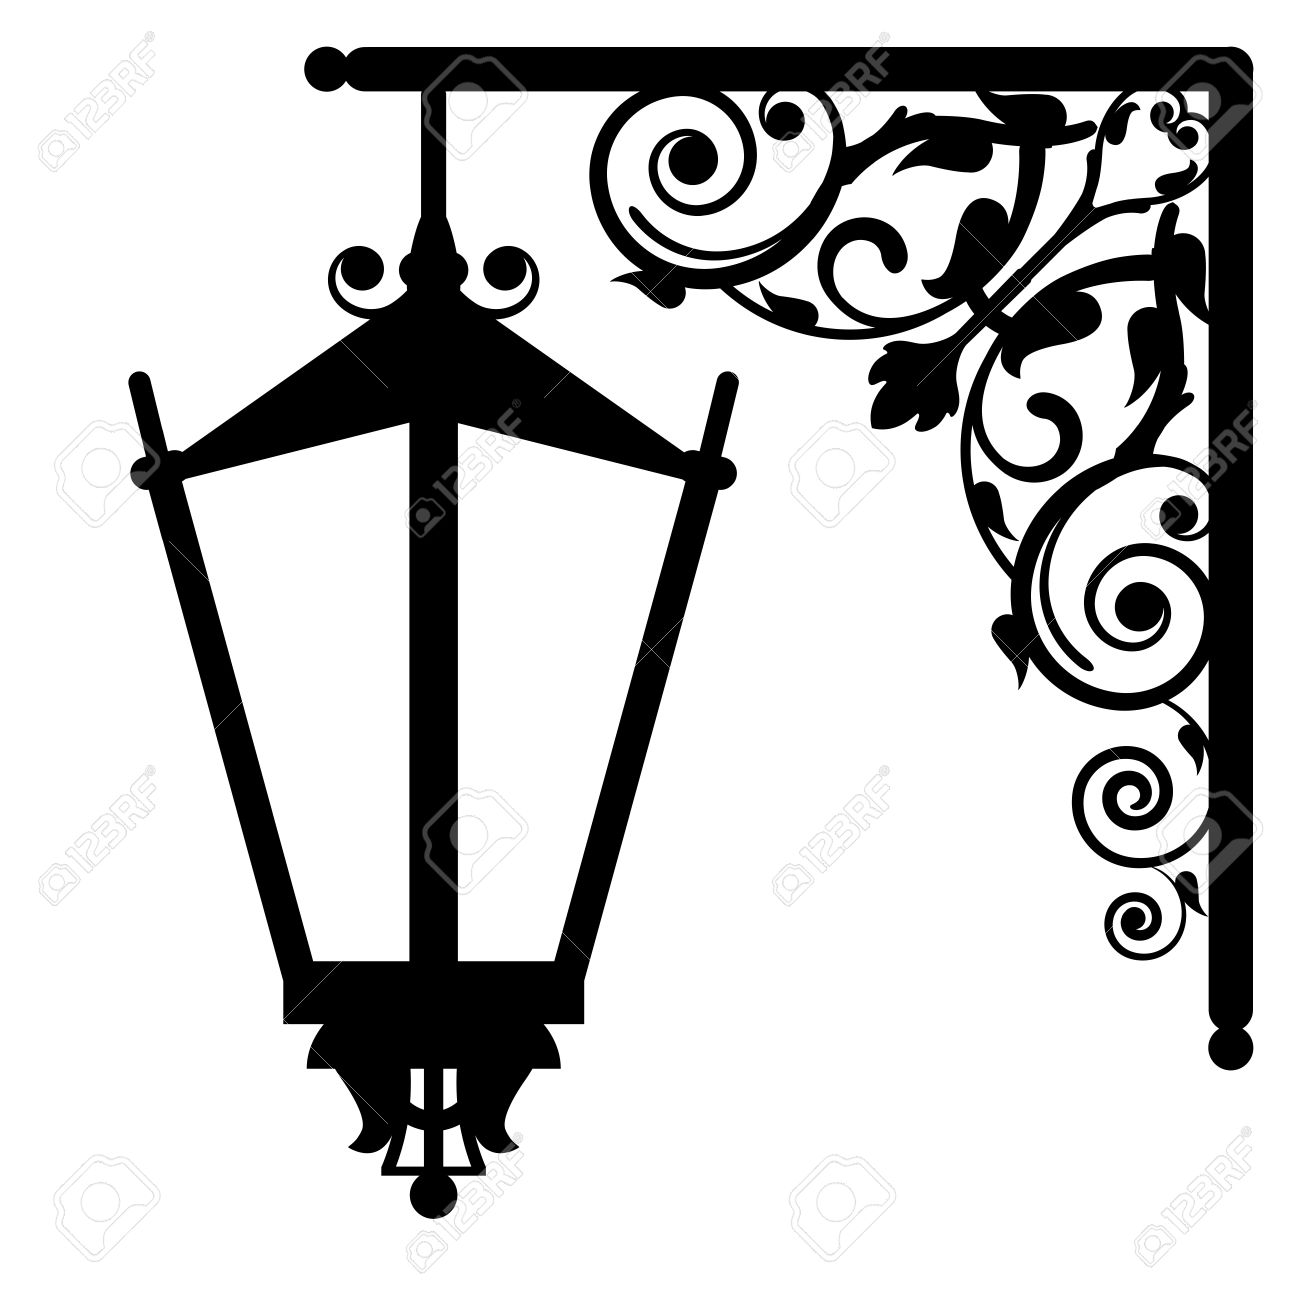 Old lantern clipart - Clipground for Old Lamp Clipart  242xkb